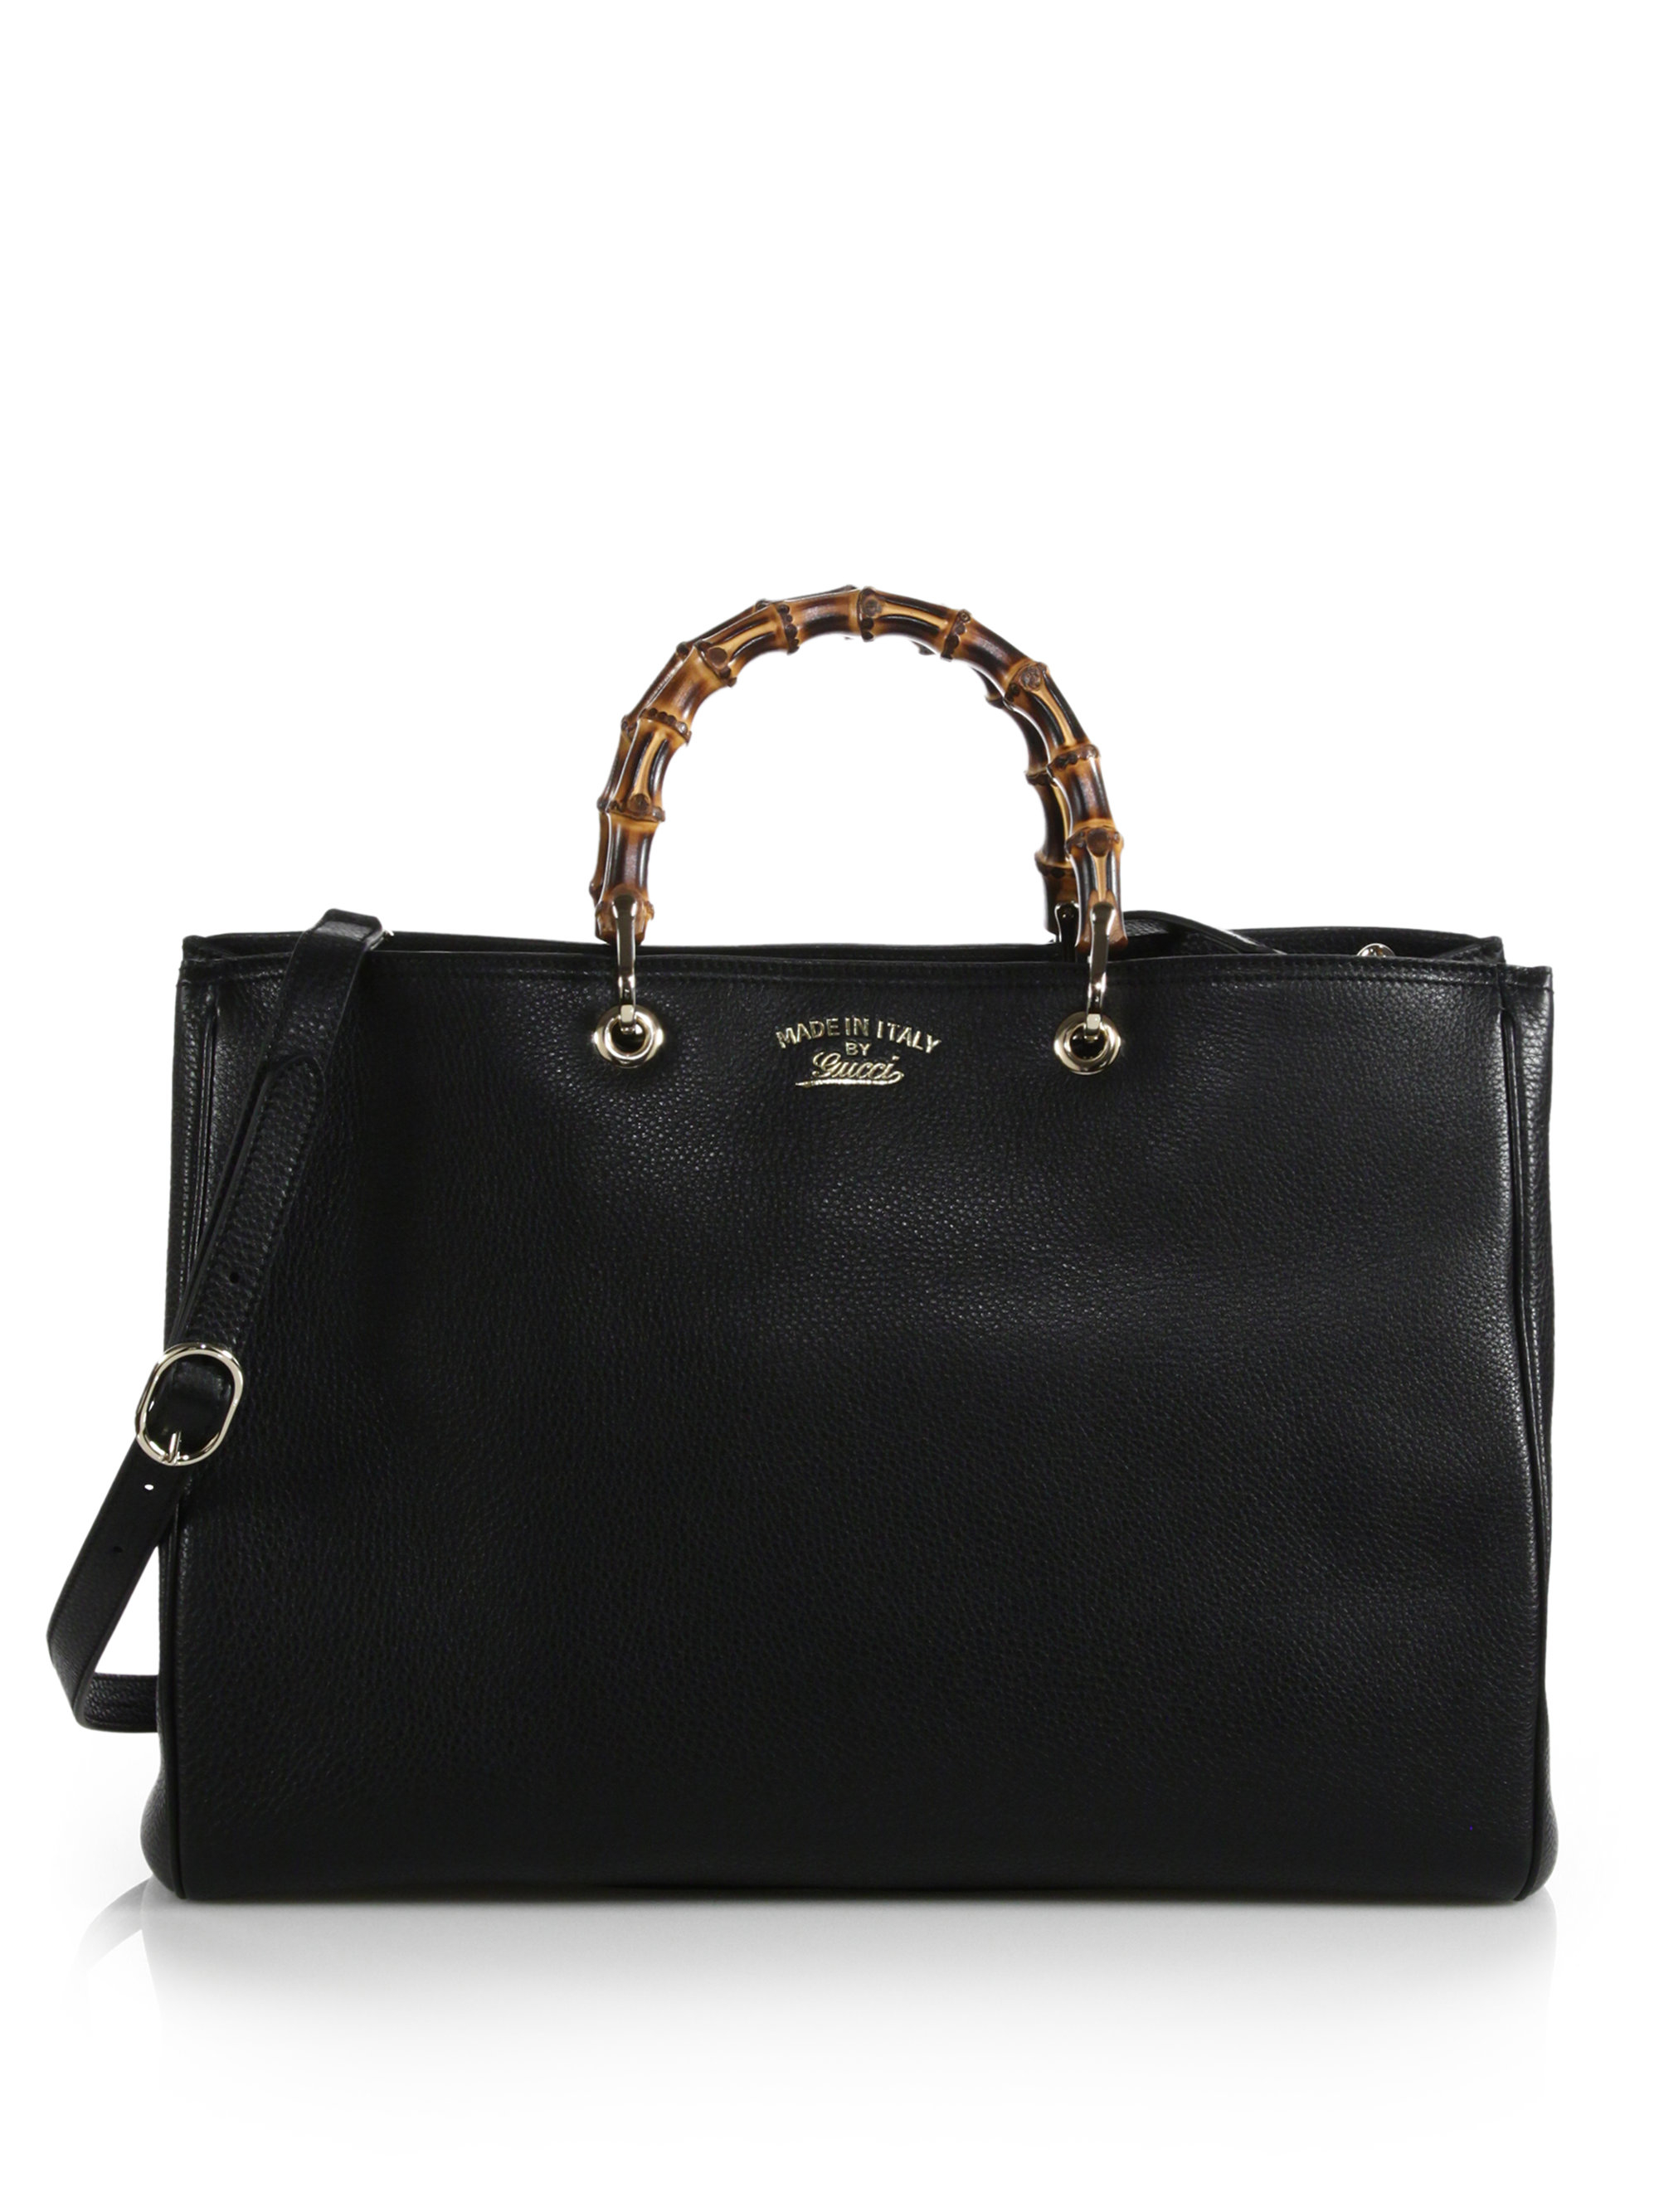 gucci bamboo shopper large leather tote in black lyst. Black Bedroom Furniture Sets. Home Design Ideas